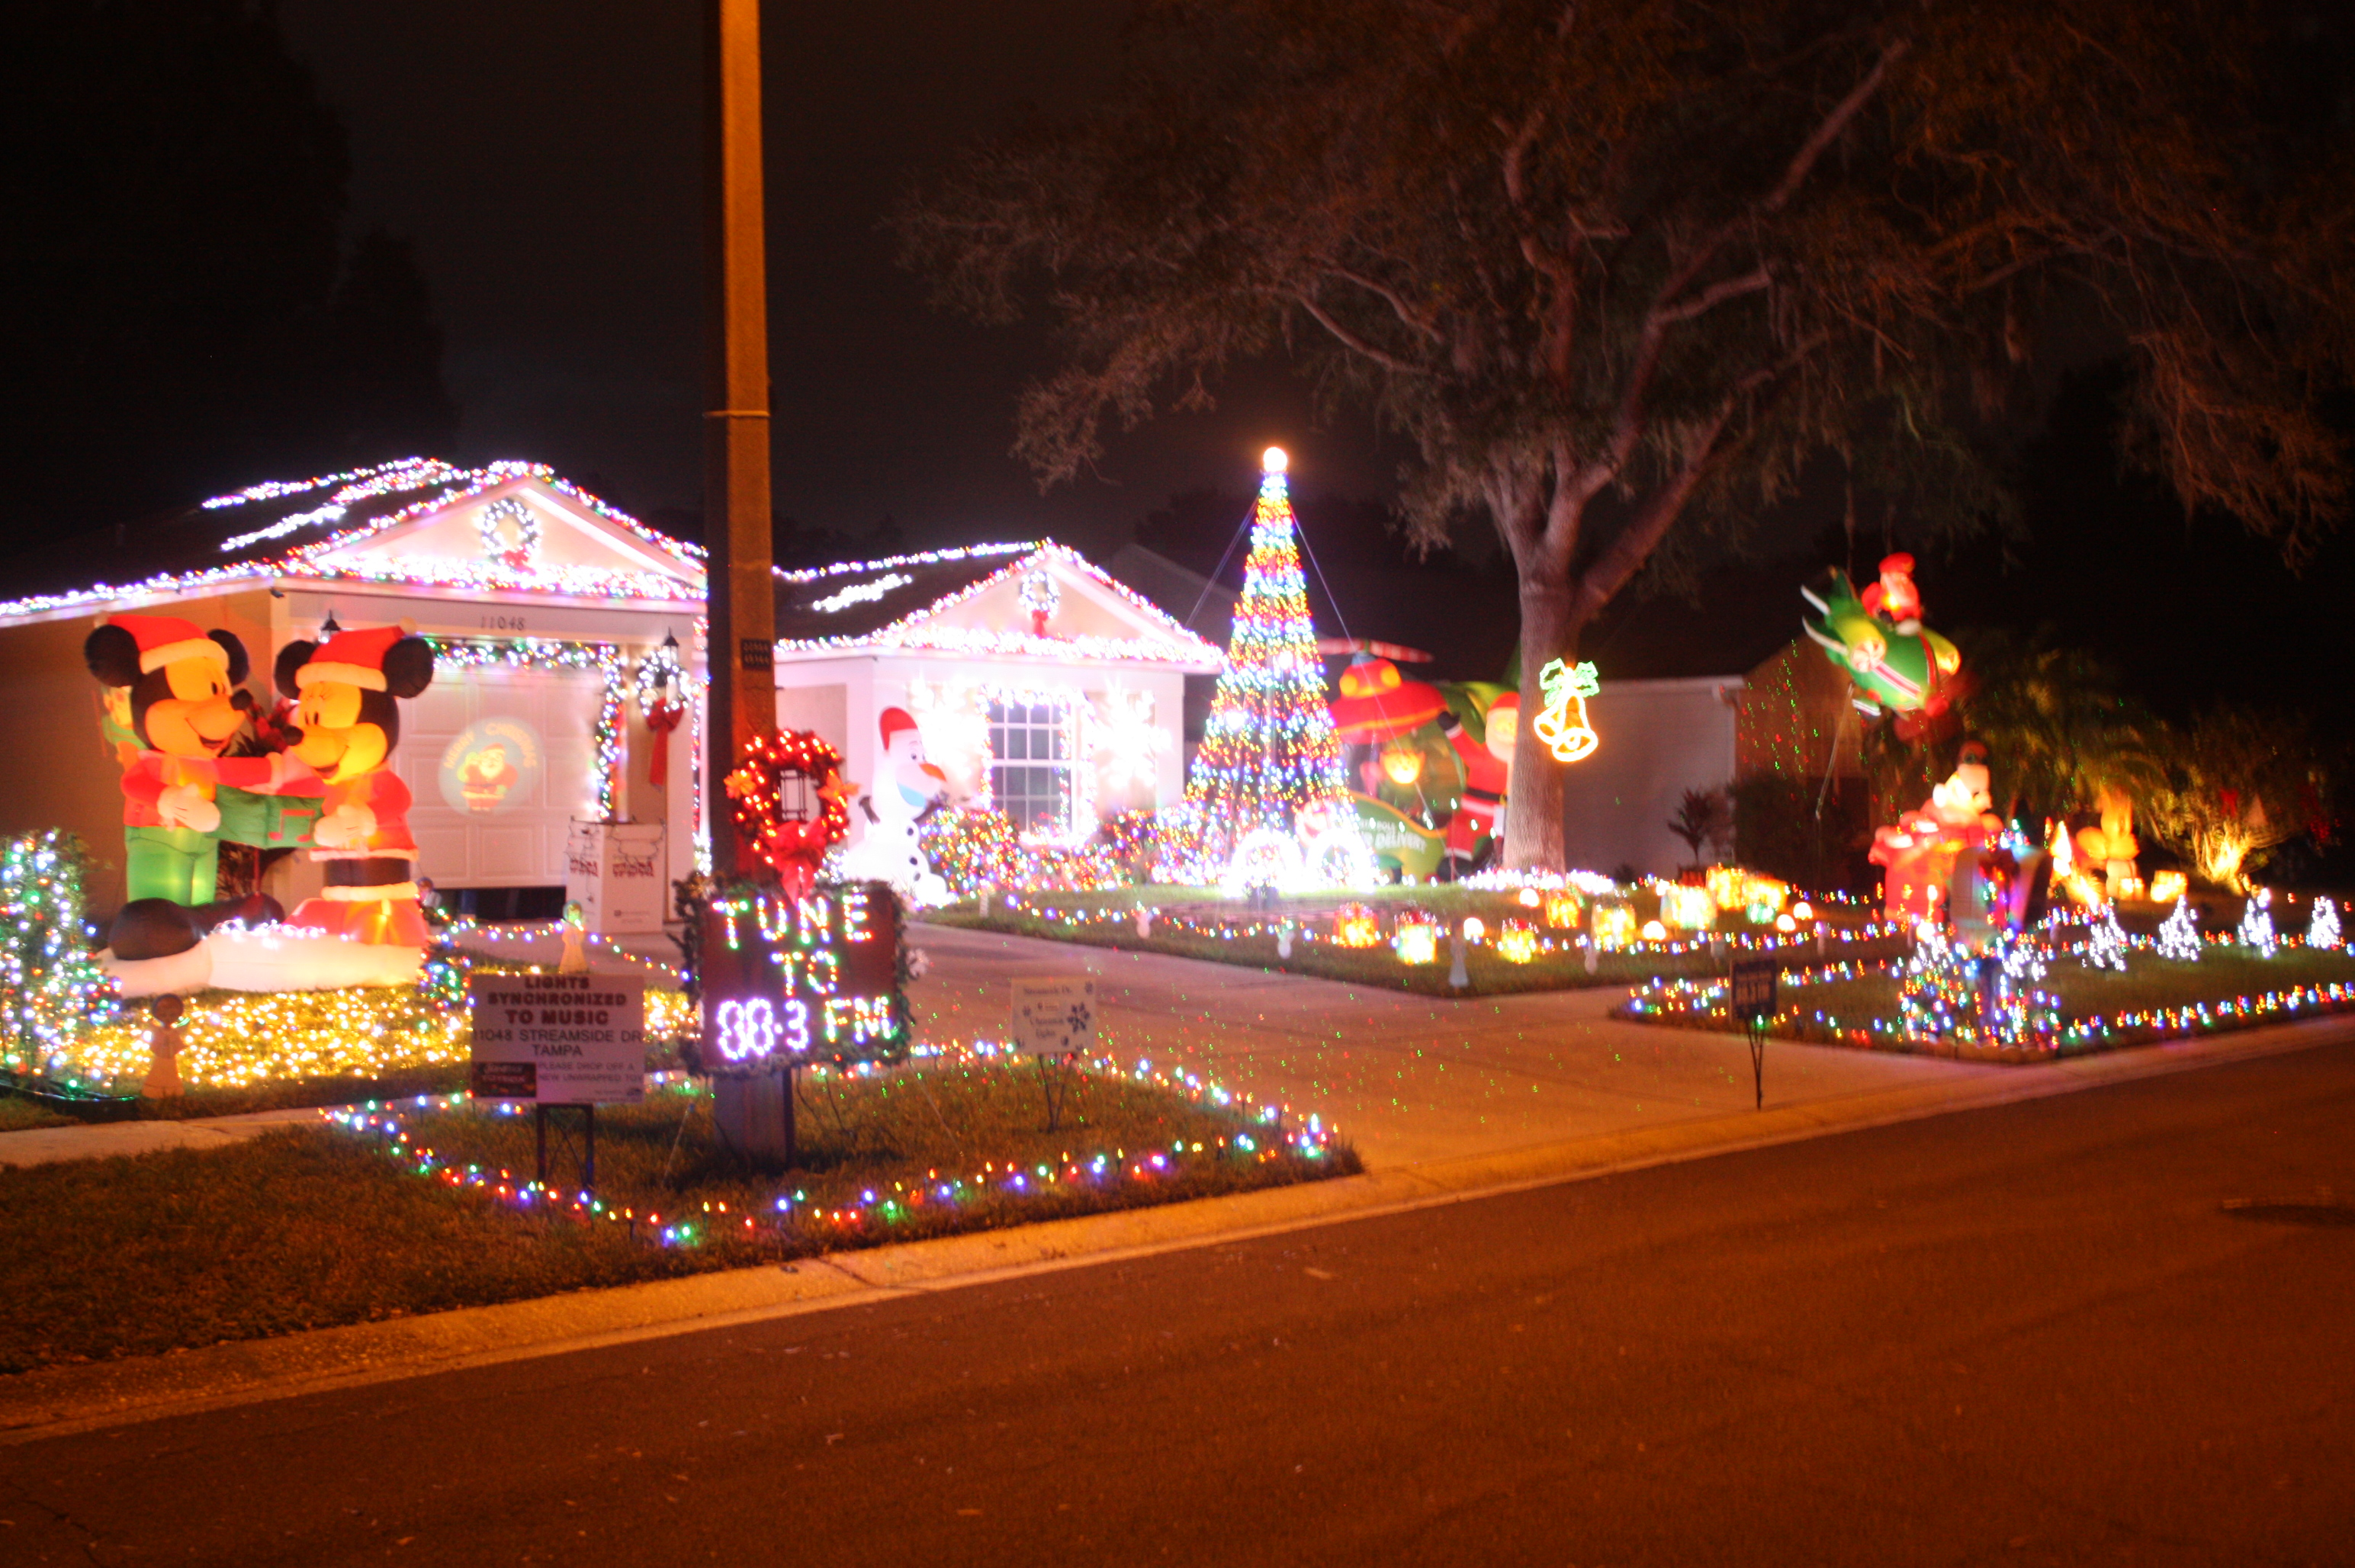 best place to see christmas light display xmas 2015 22 jpg - Best Christmas Lights Display